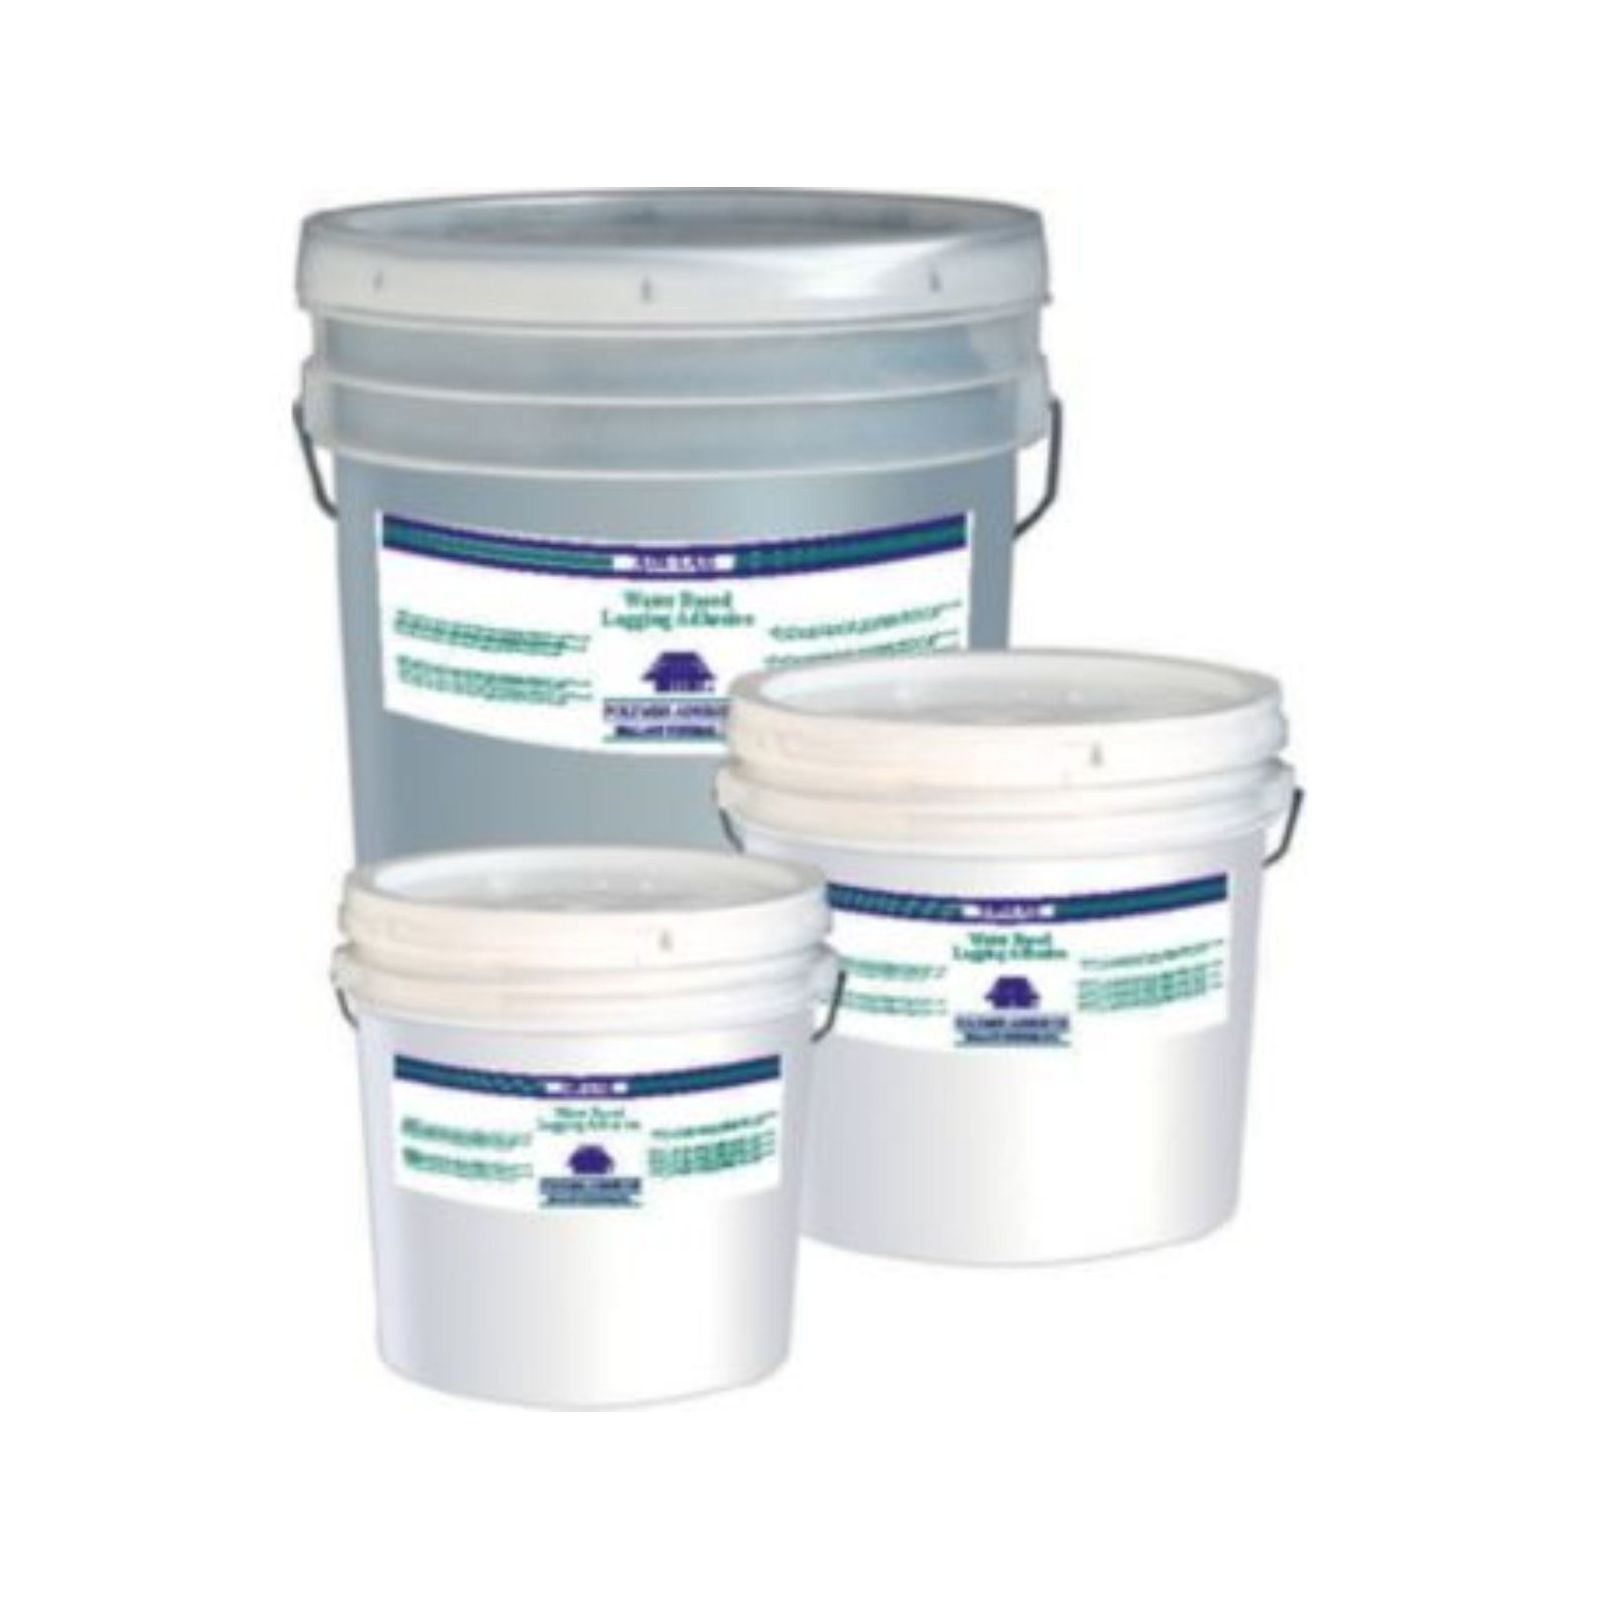 Polymer Adhesives AL-1(W) - Airlag-1 White, Water Based Lagging Adhesive